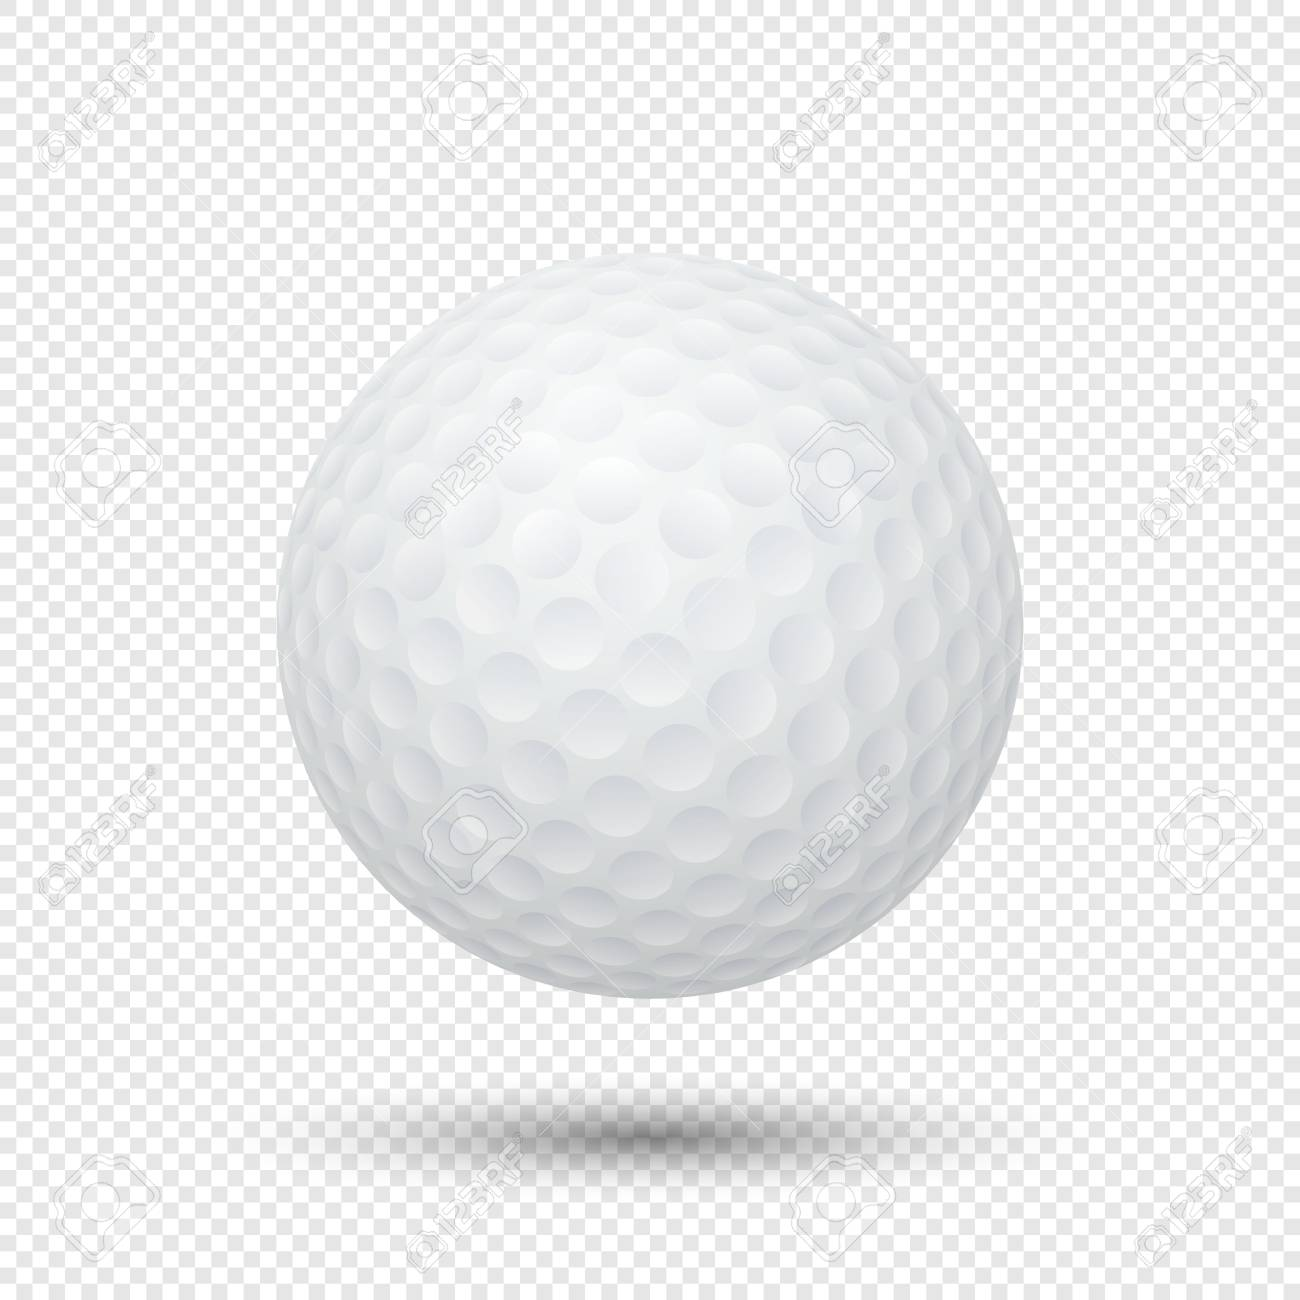 Vector Realistic Flying Golf Ball Closeup Isolated On Transparent Royalty Free Cliparts Vectors And Stock Illustration Image 75841963